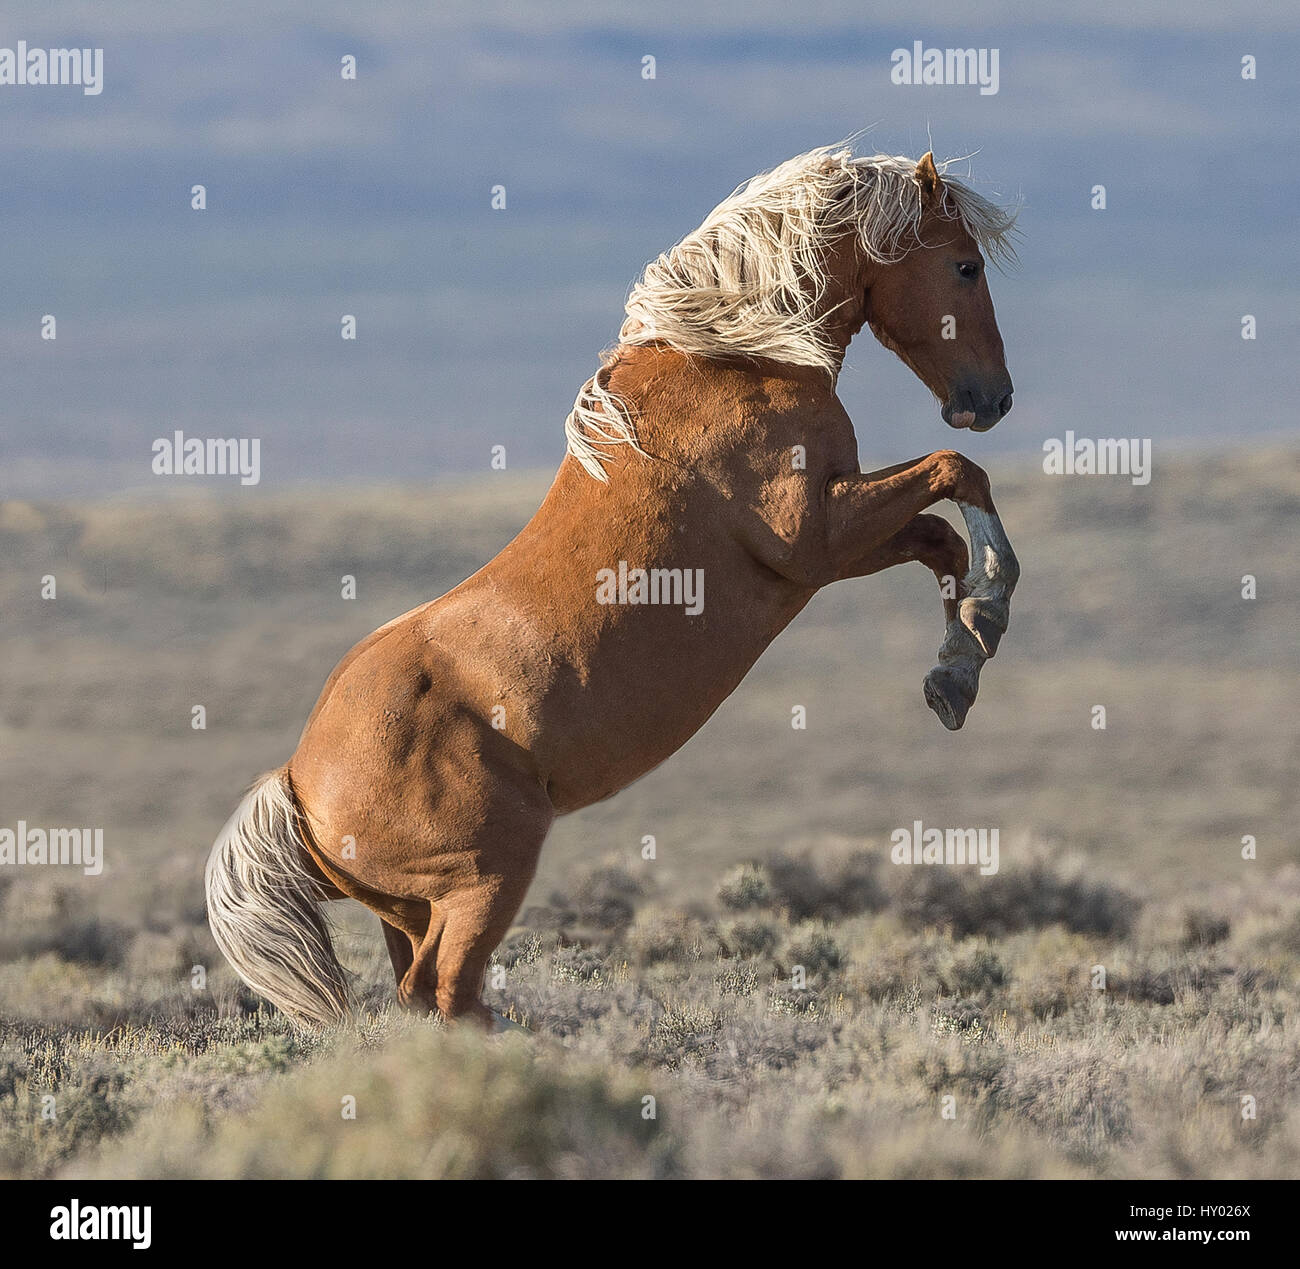 Wild Mustang palomino stallion rearing, White Mountain, Wyoming, USA. August. - Stock Image